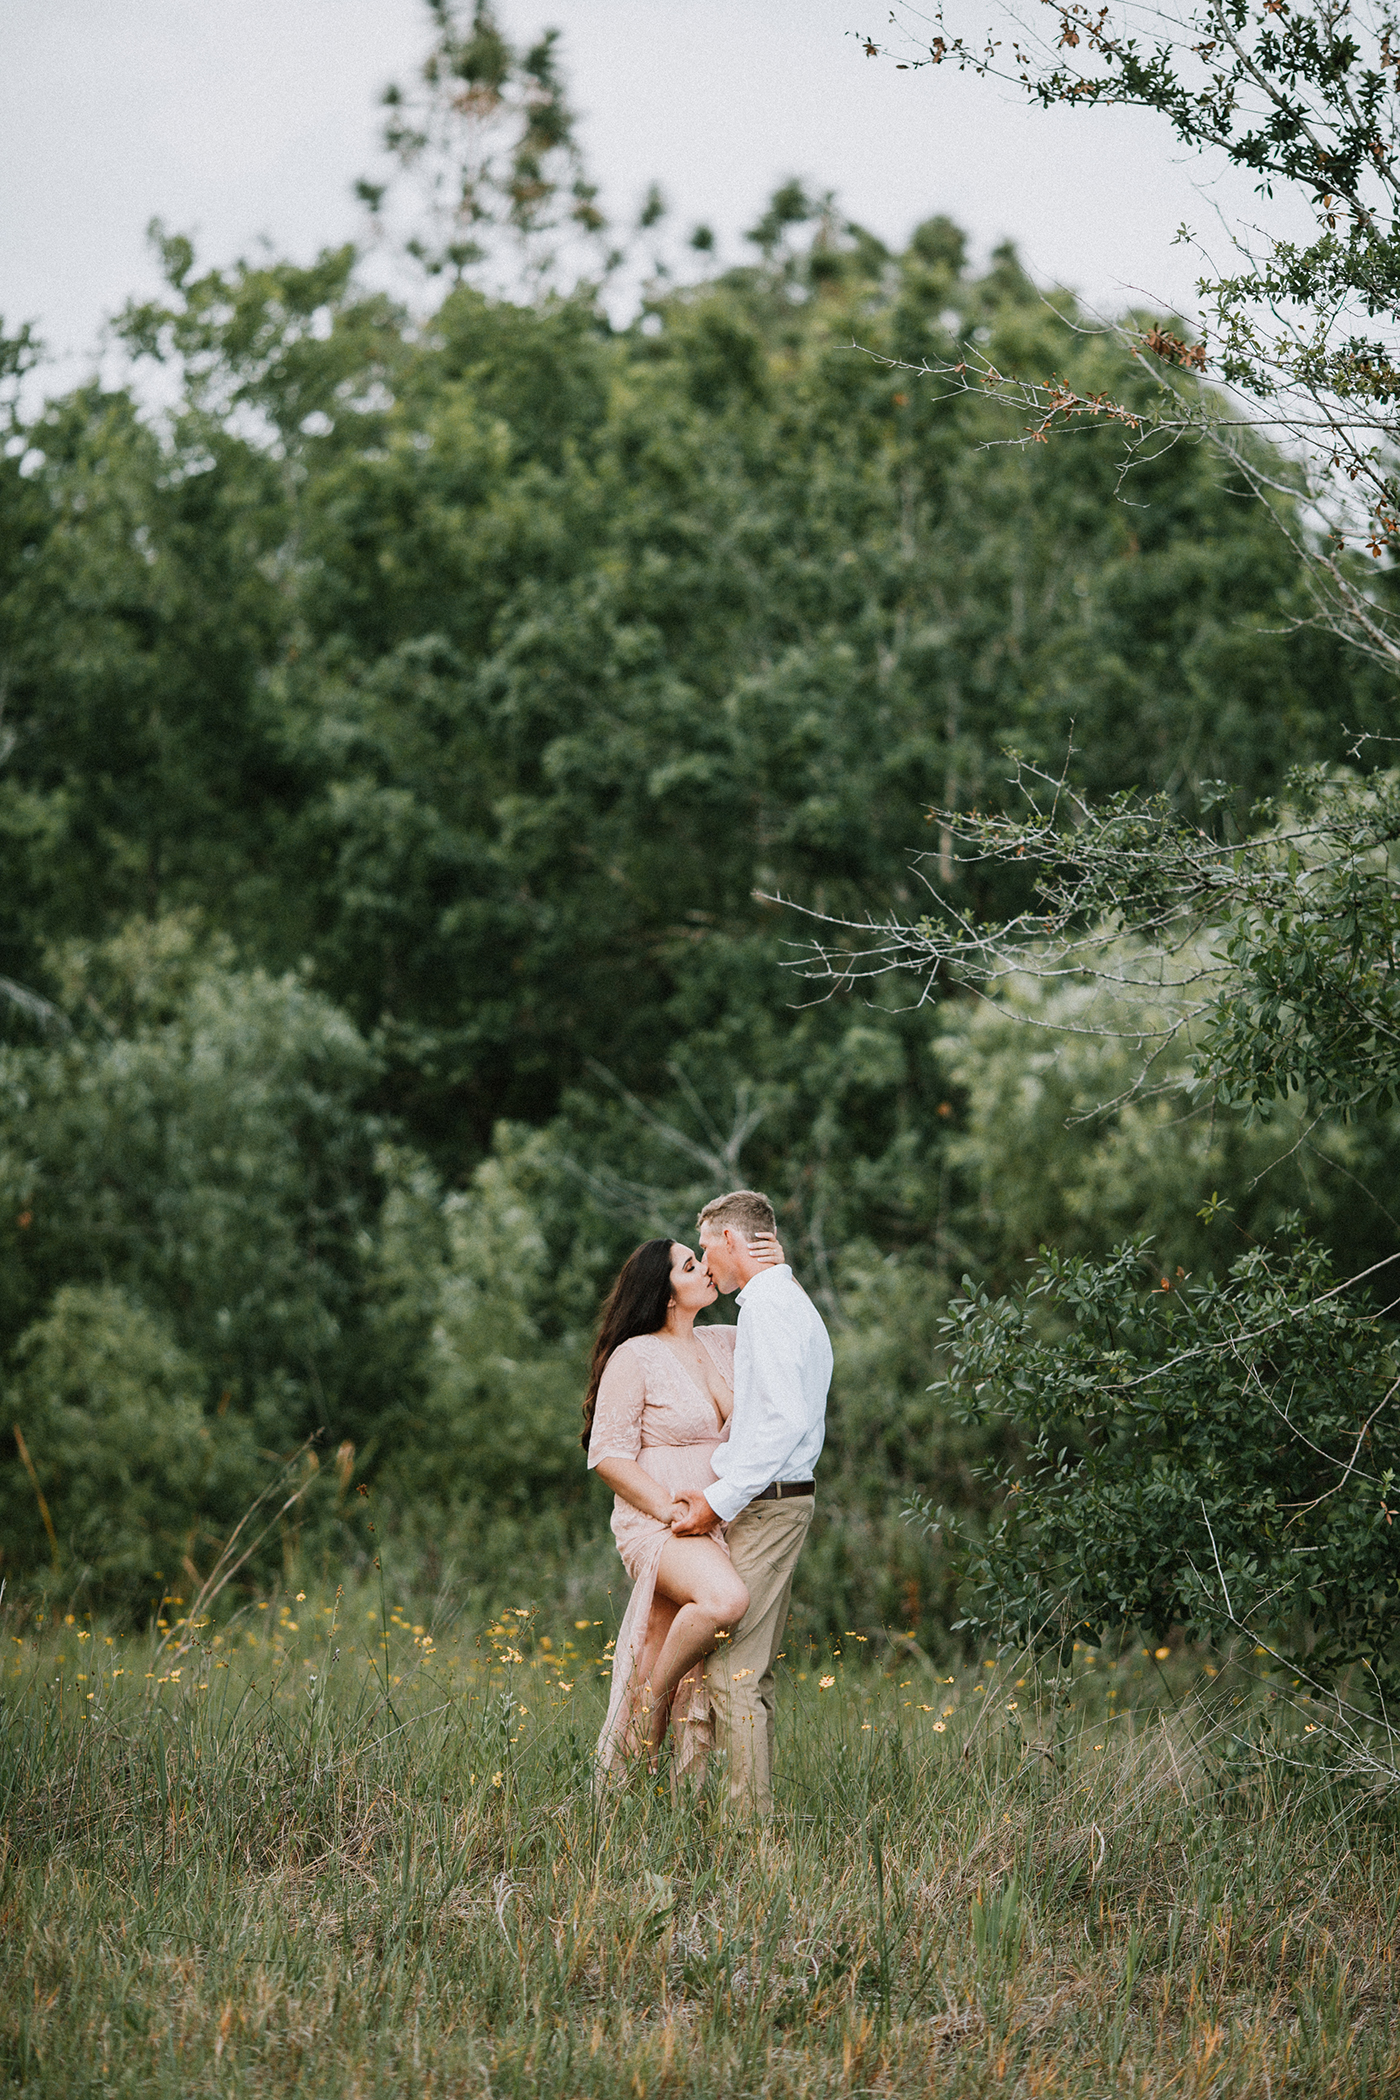 Here a just a few images from their magical session! His family sure does have some beautiful property they let us play on. Almost doesn't feel like Florida.....almost. Ha! Hurry up October so I can share their Wedding Images with you!